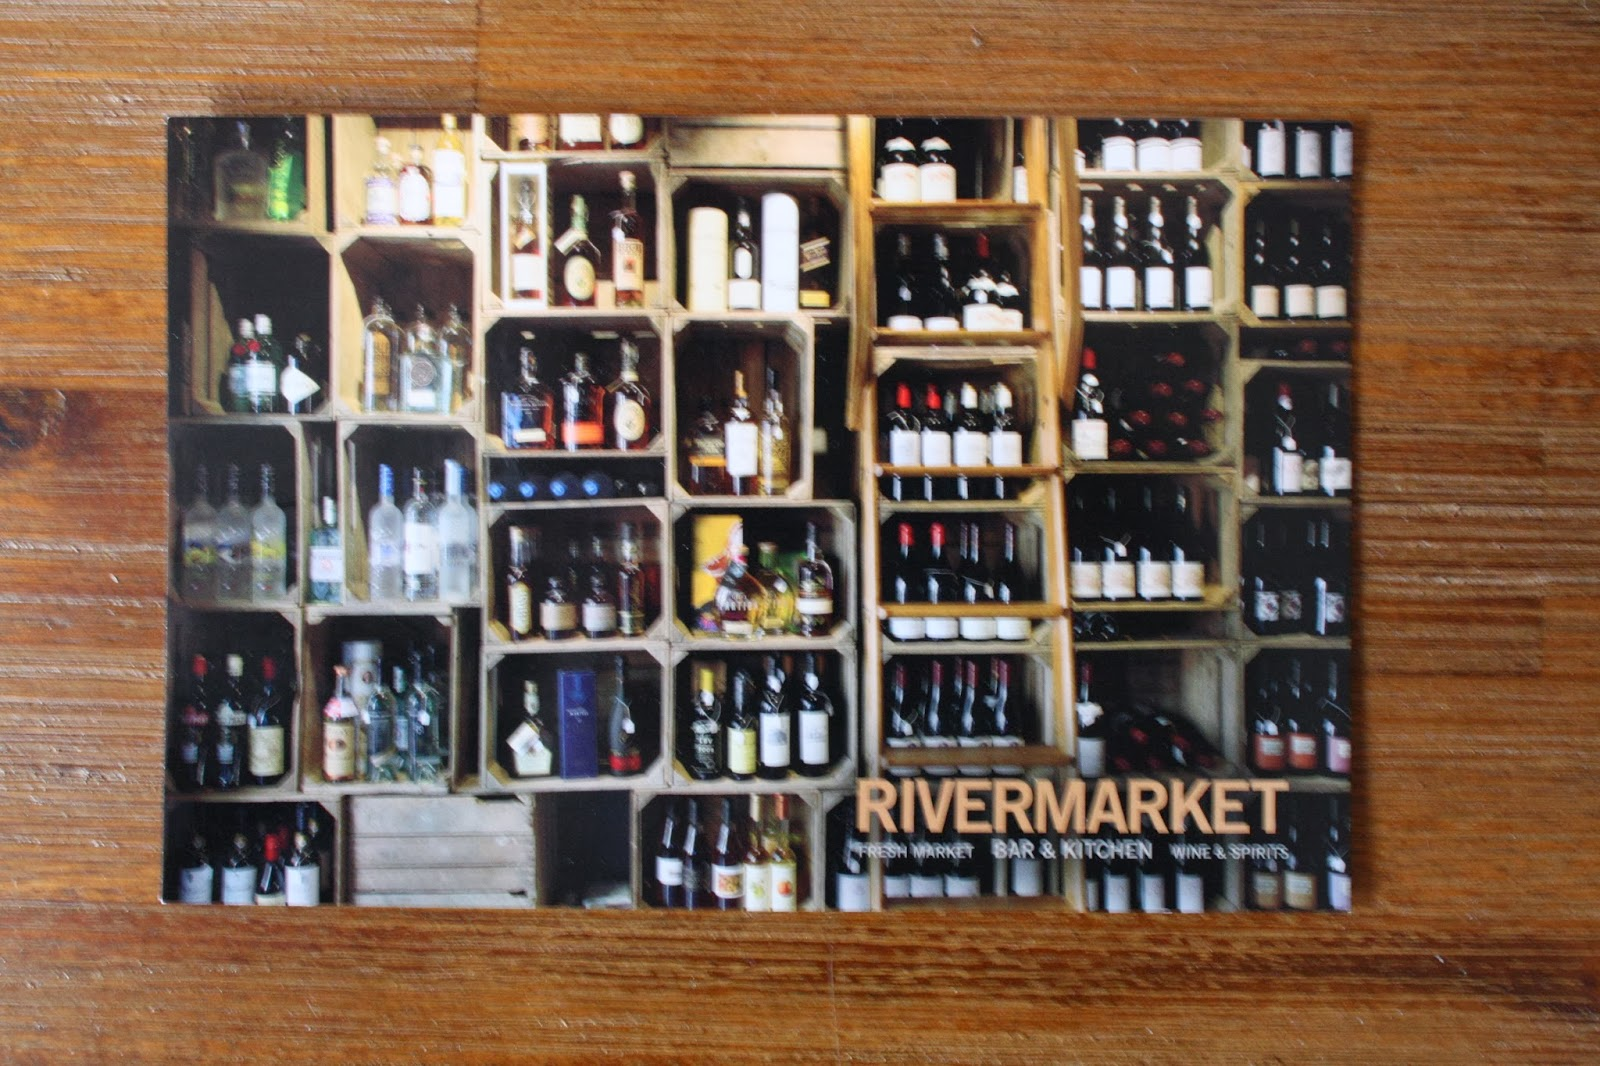 Rivermarket restaurant, Tarrytown, Hudson Valley